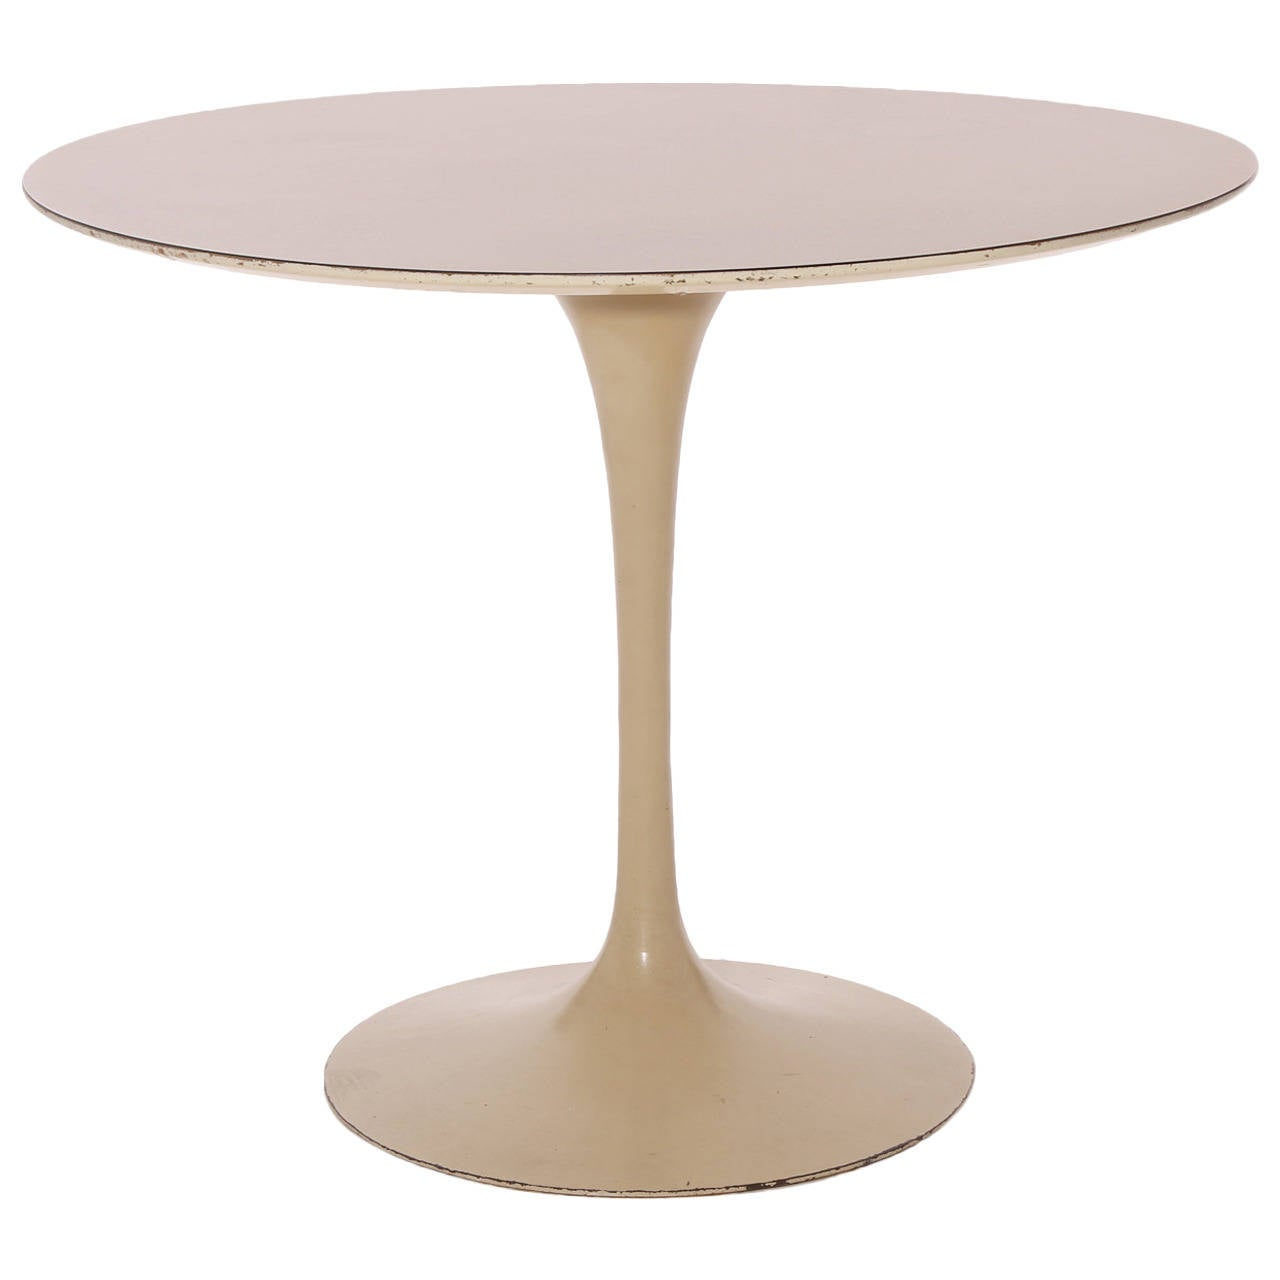 Early Iron Base Tulip Dining Table By Eero Saarinen At 1stdibs